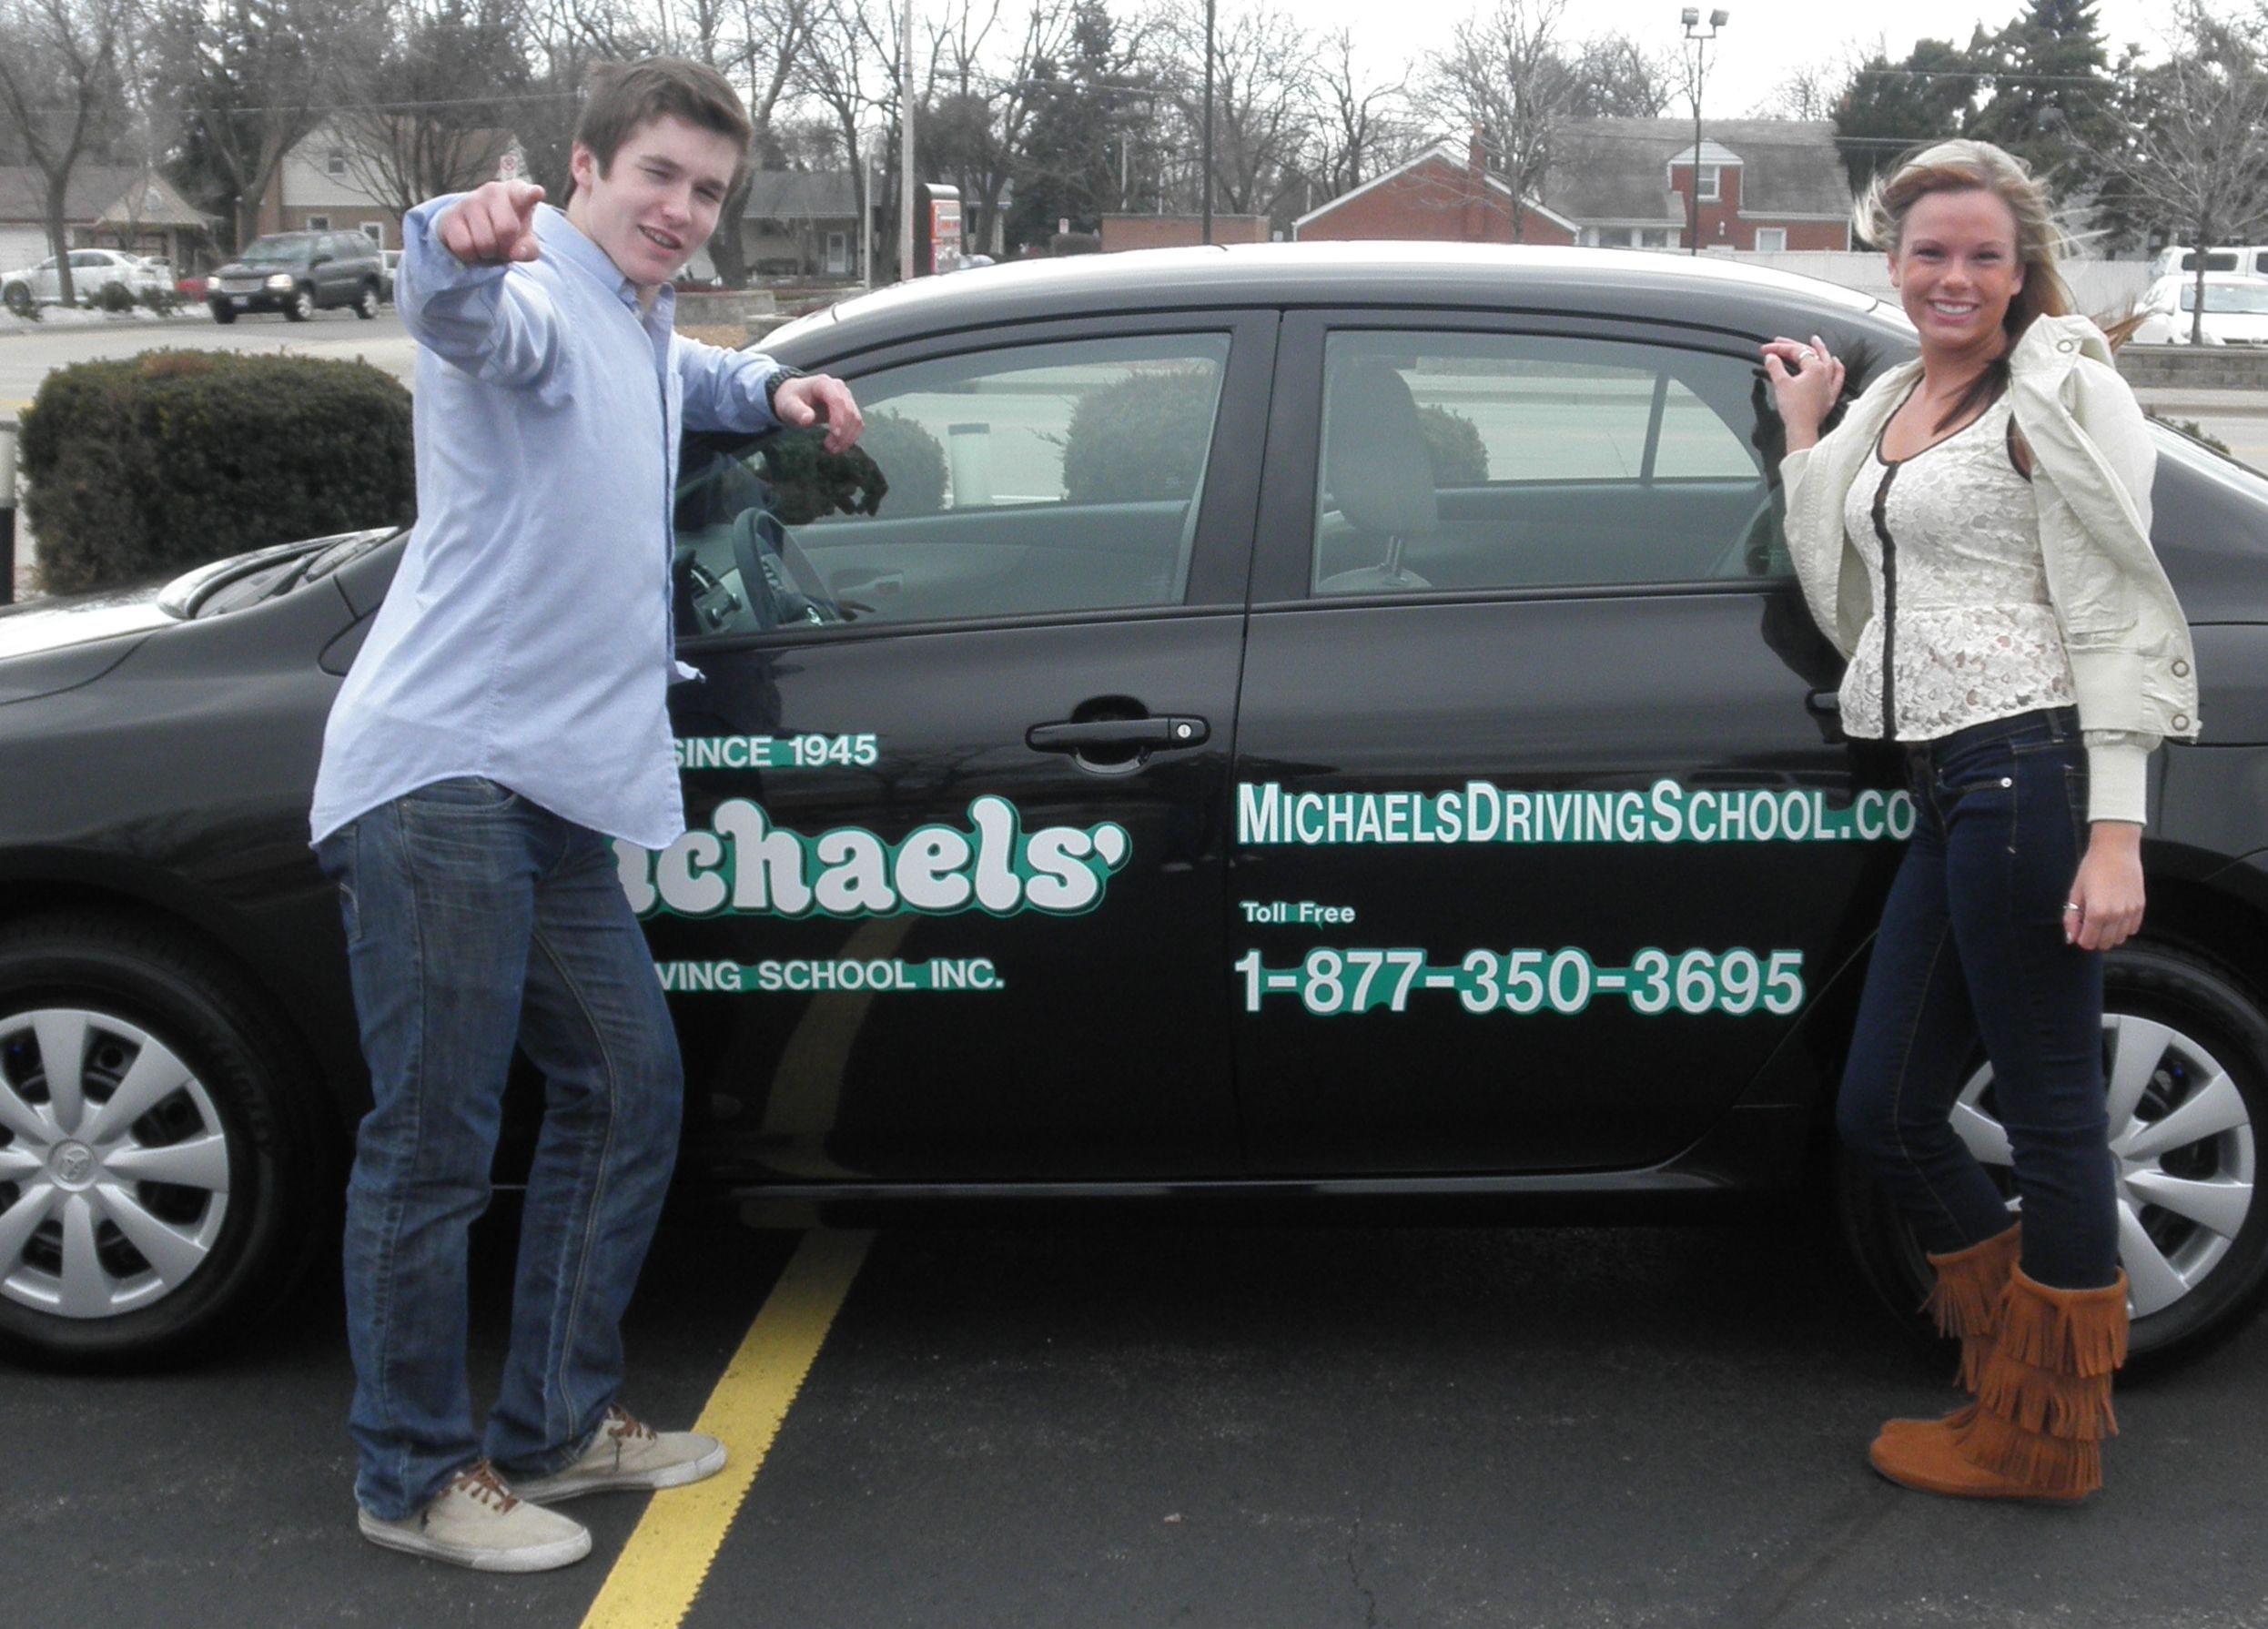 Drivers Education Classes For Teens And Adults Michaels Driving